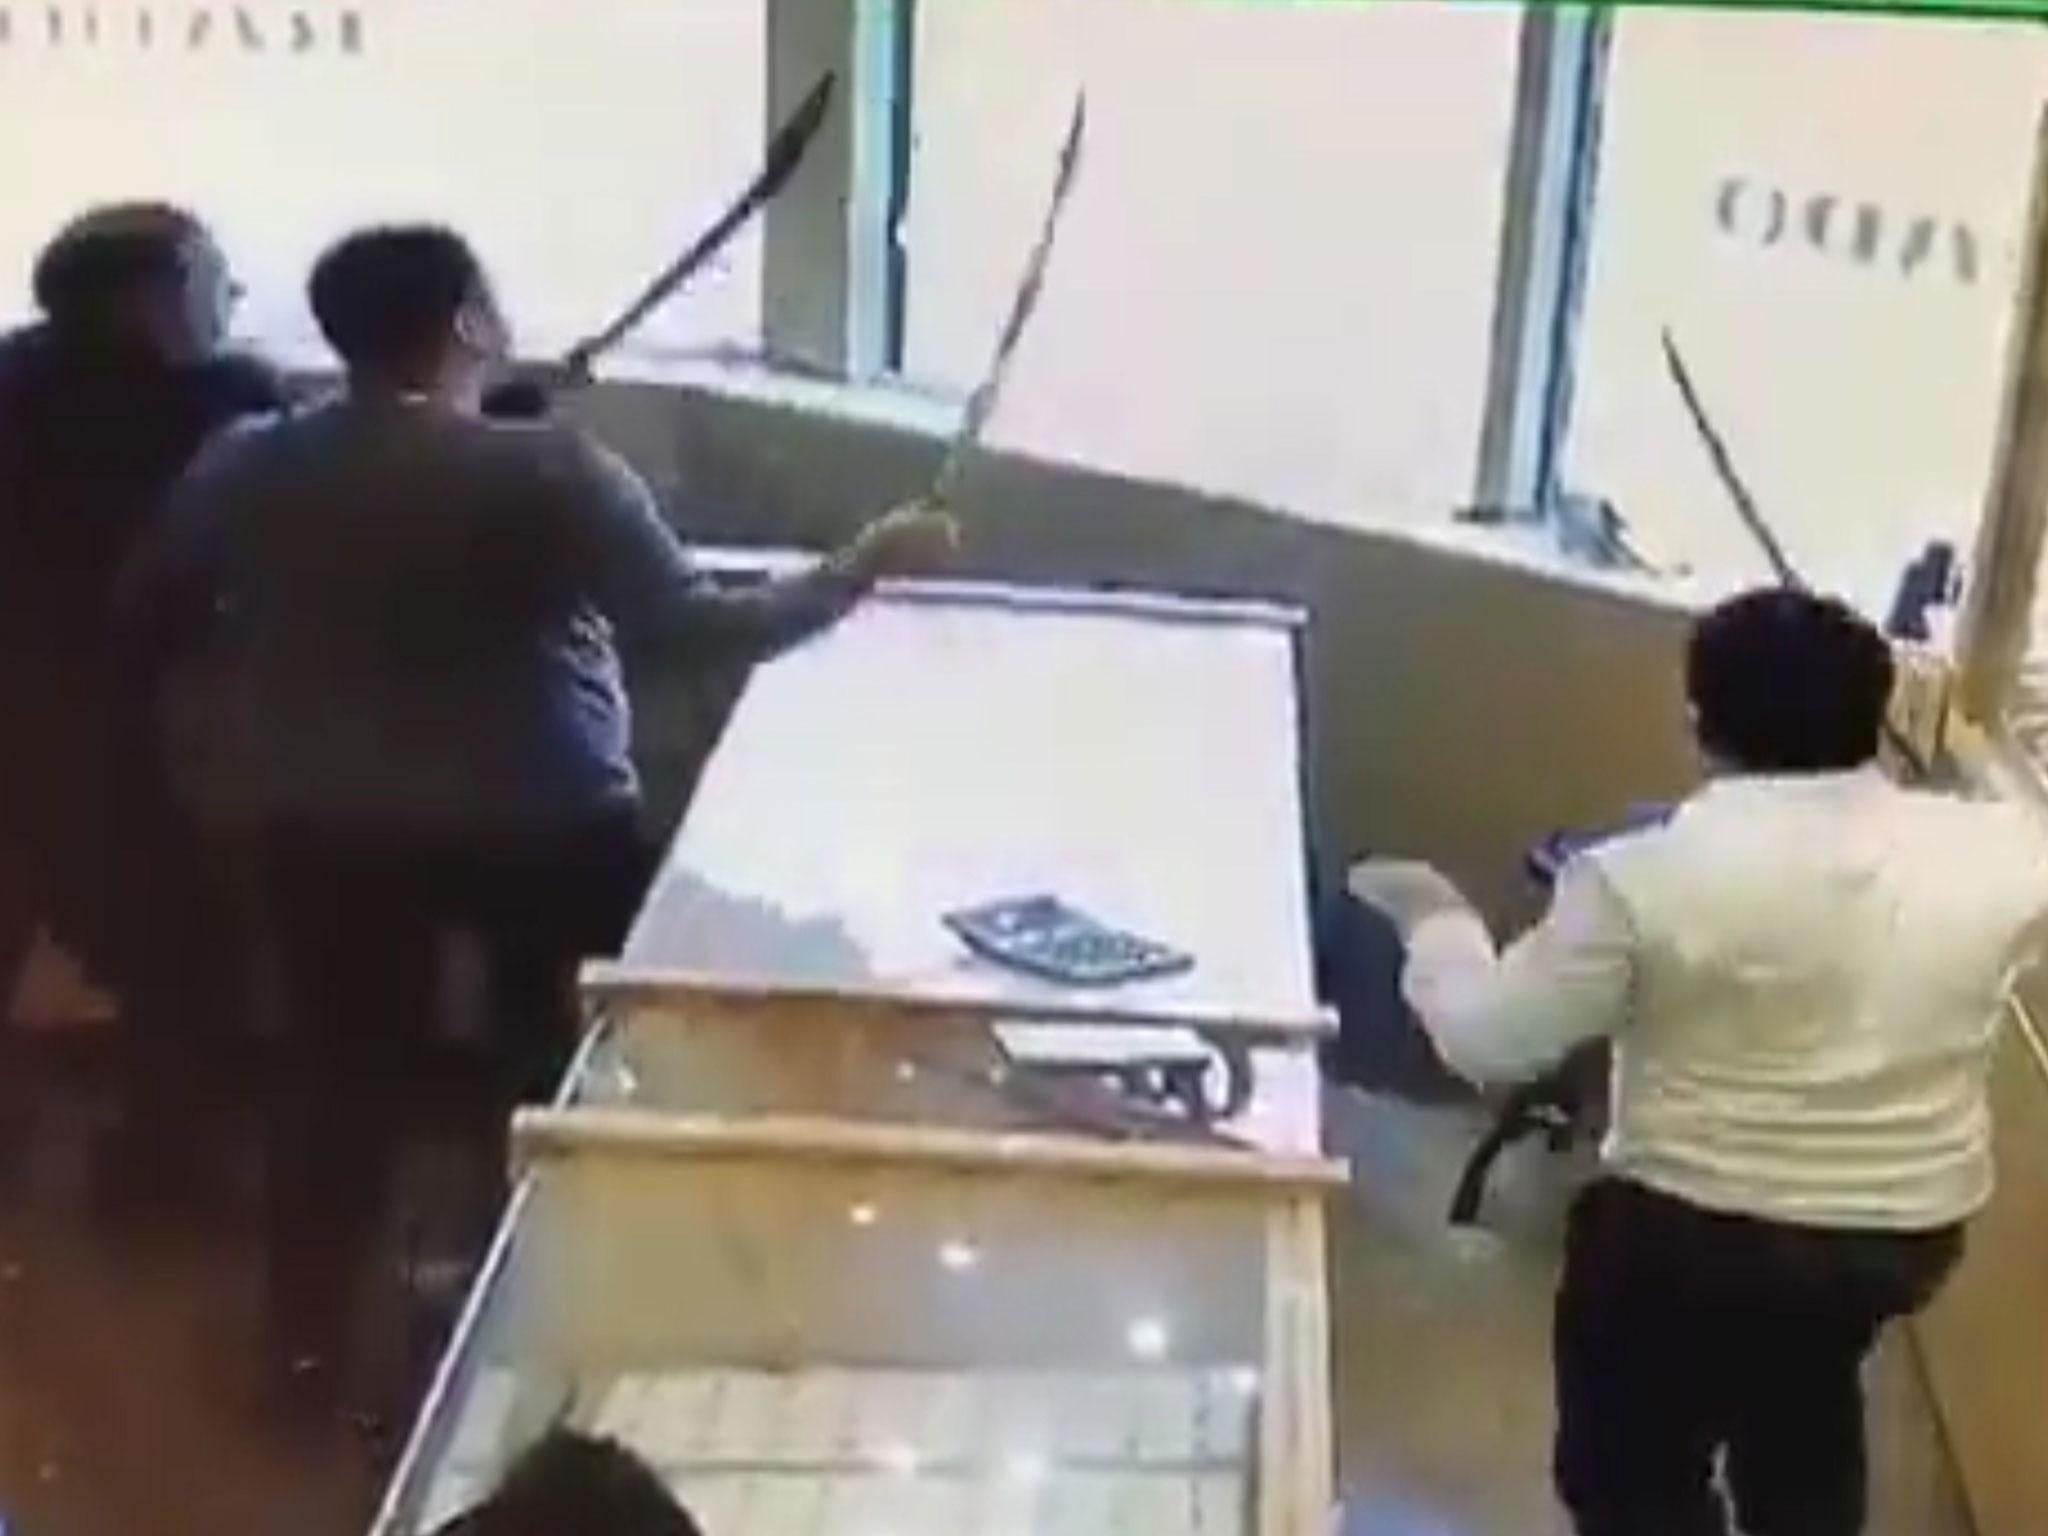 Jewellery store staff use swords to fight off would-be thieves in CCTV footage